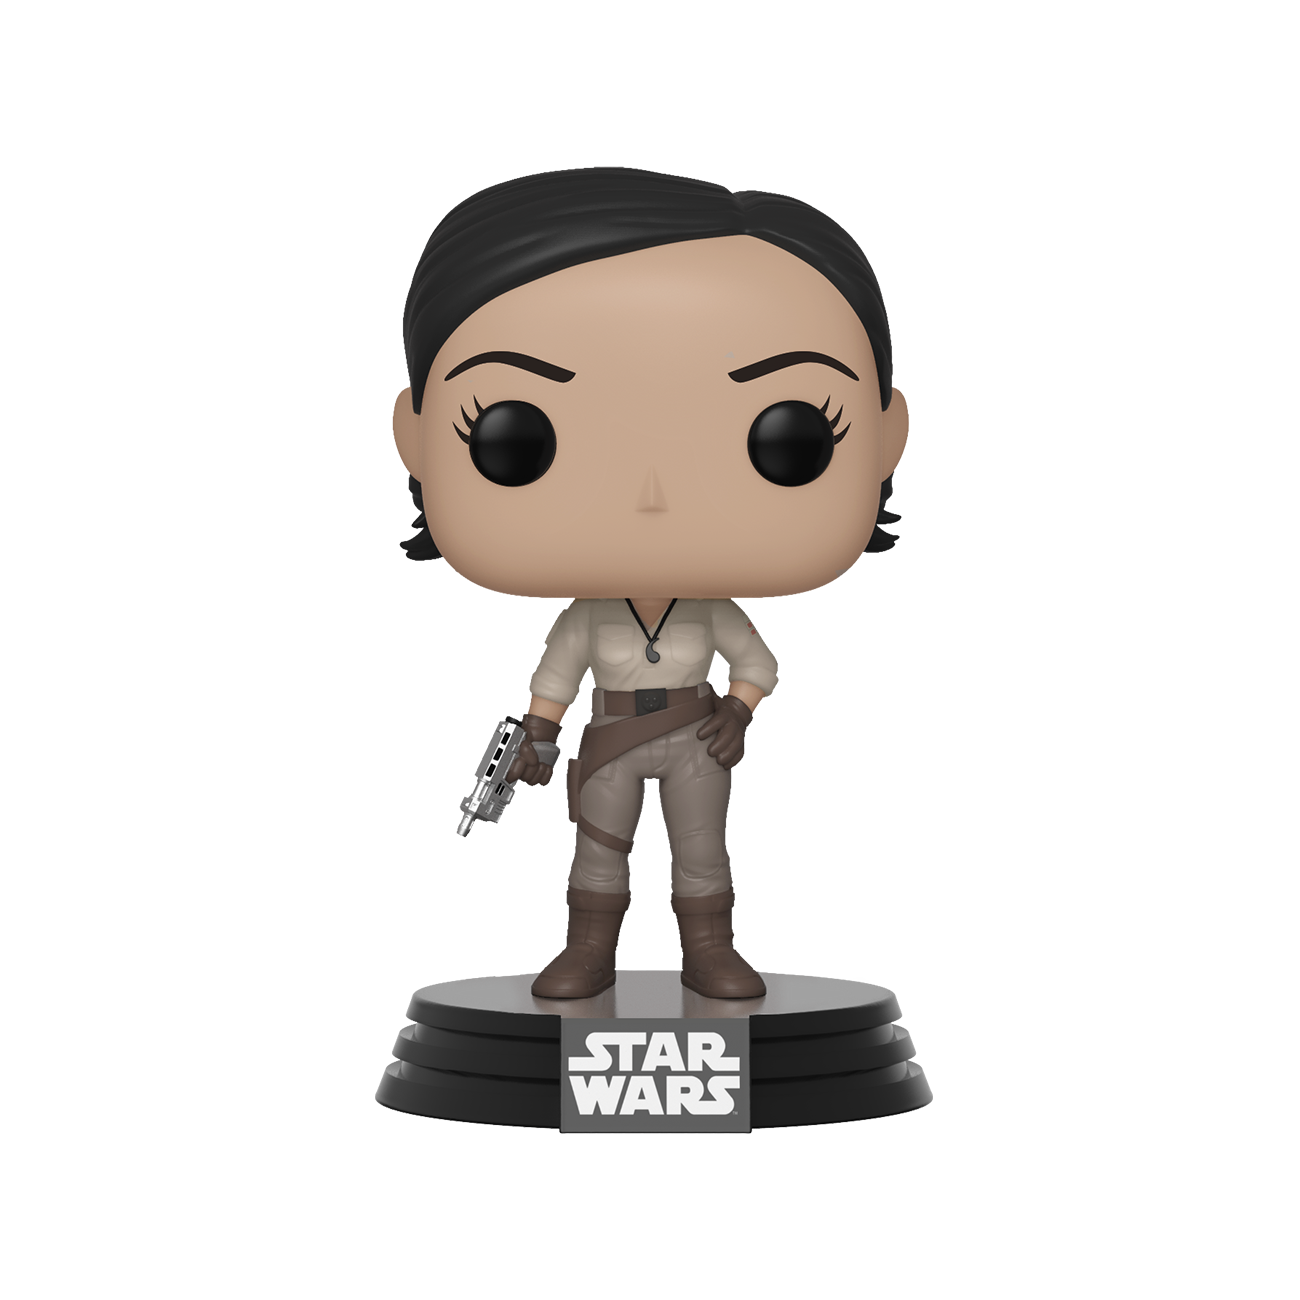 STAR WARS FUNKO POP